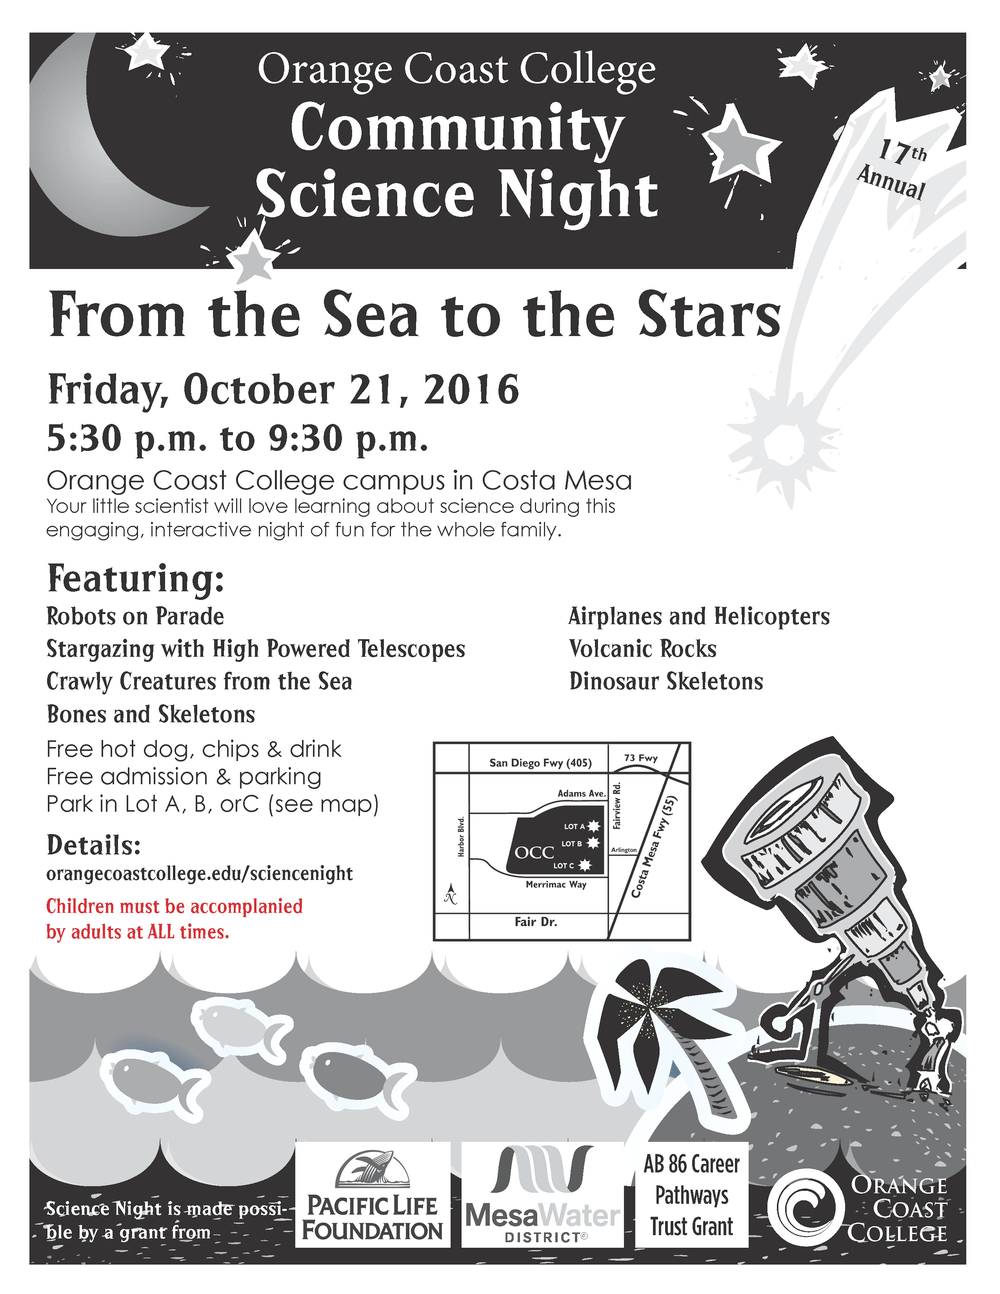 Science Night flyer 2016_final_Page_1.png